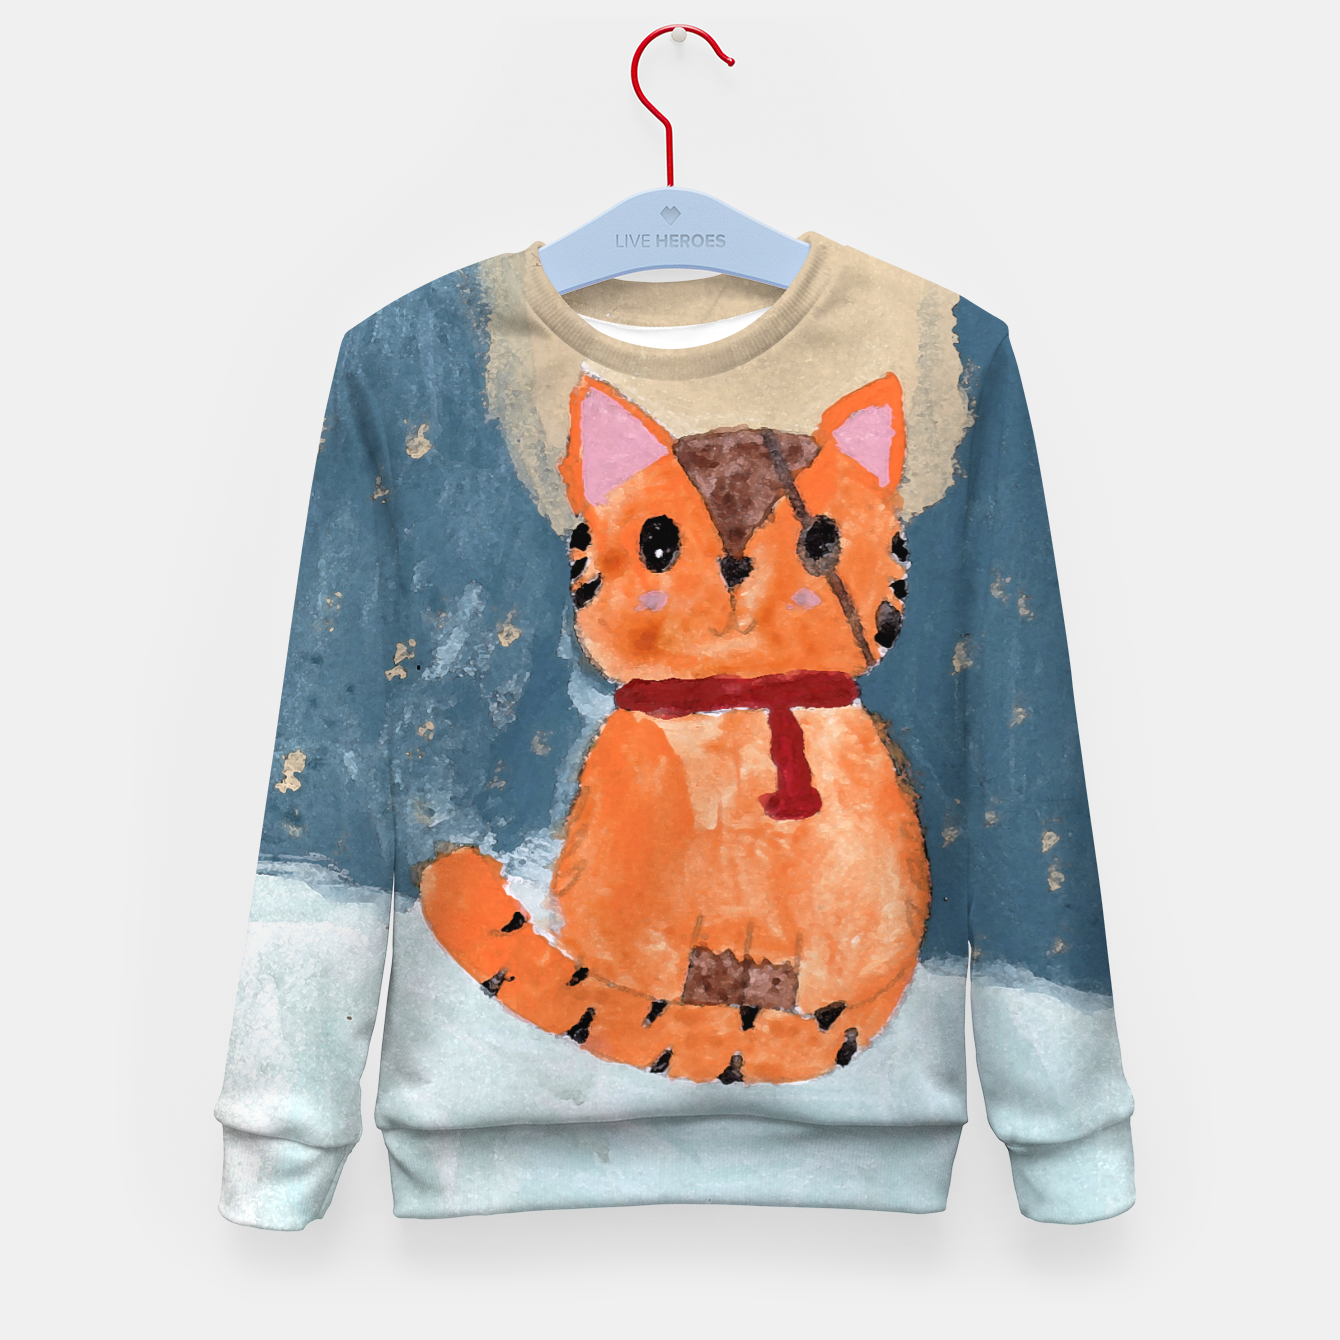 Image of Natali's tiger kitty with pirate eye bandage, a promise to my daughter Kid's sweater - Live Heroes